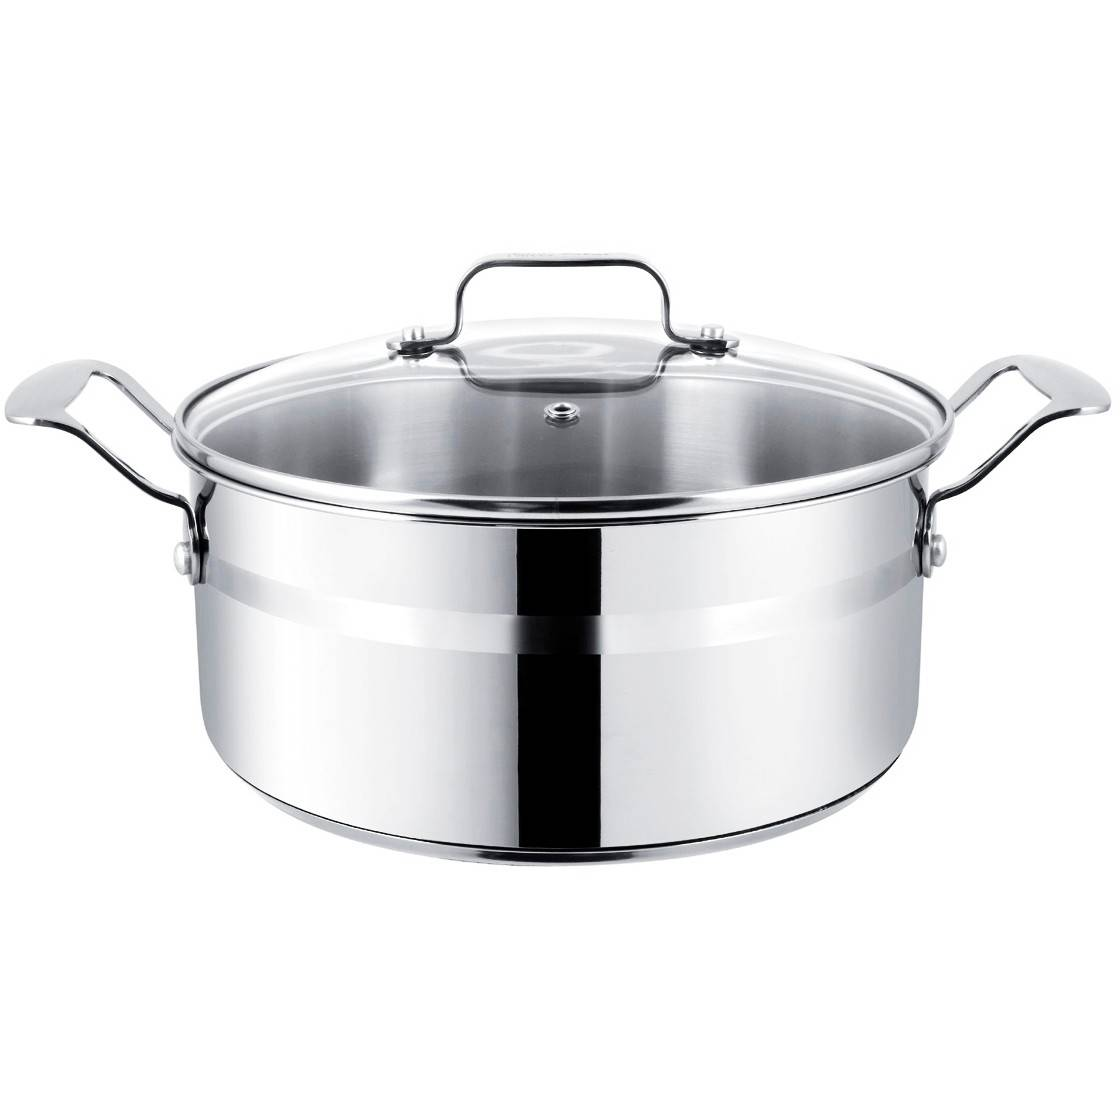 Tefal Jamie Oliver Mass Stainless Steel pata 20cm